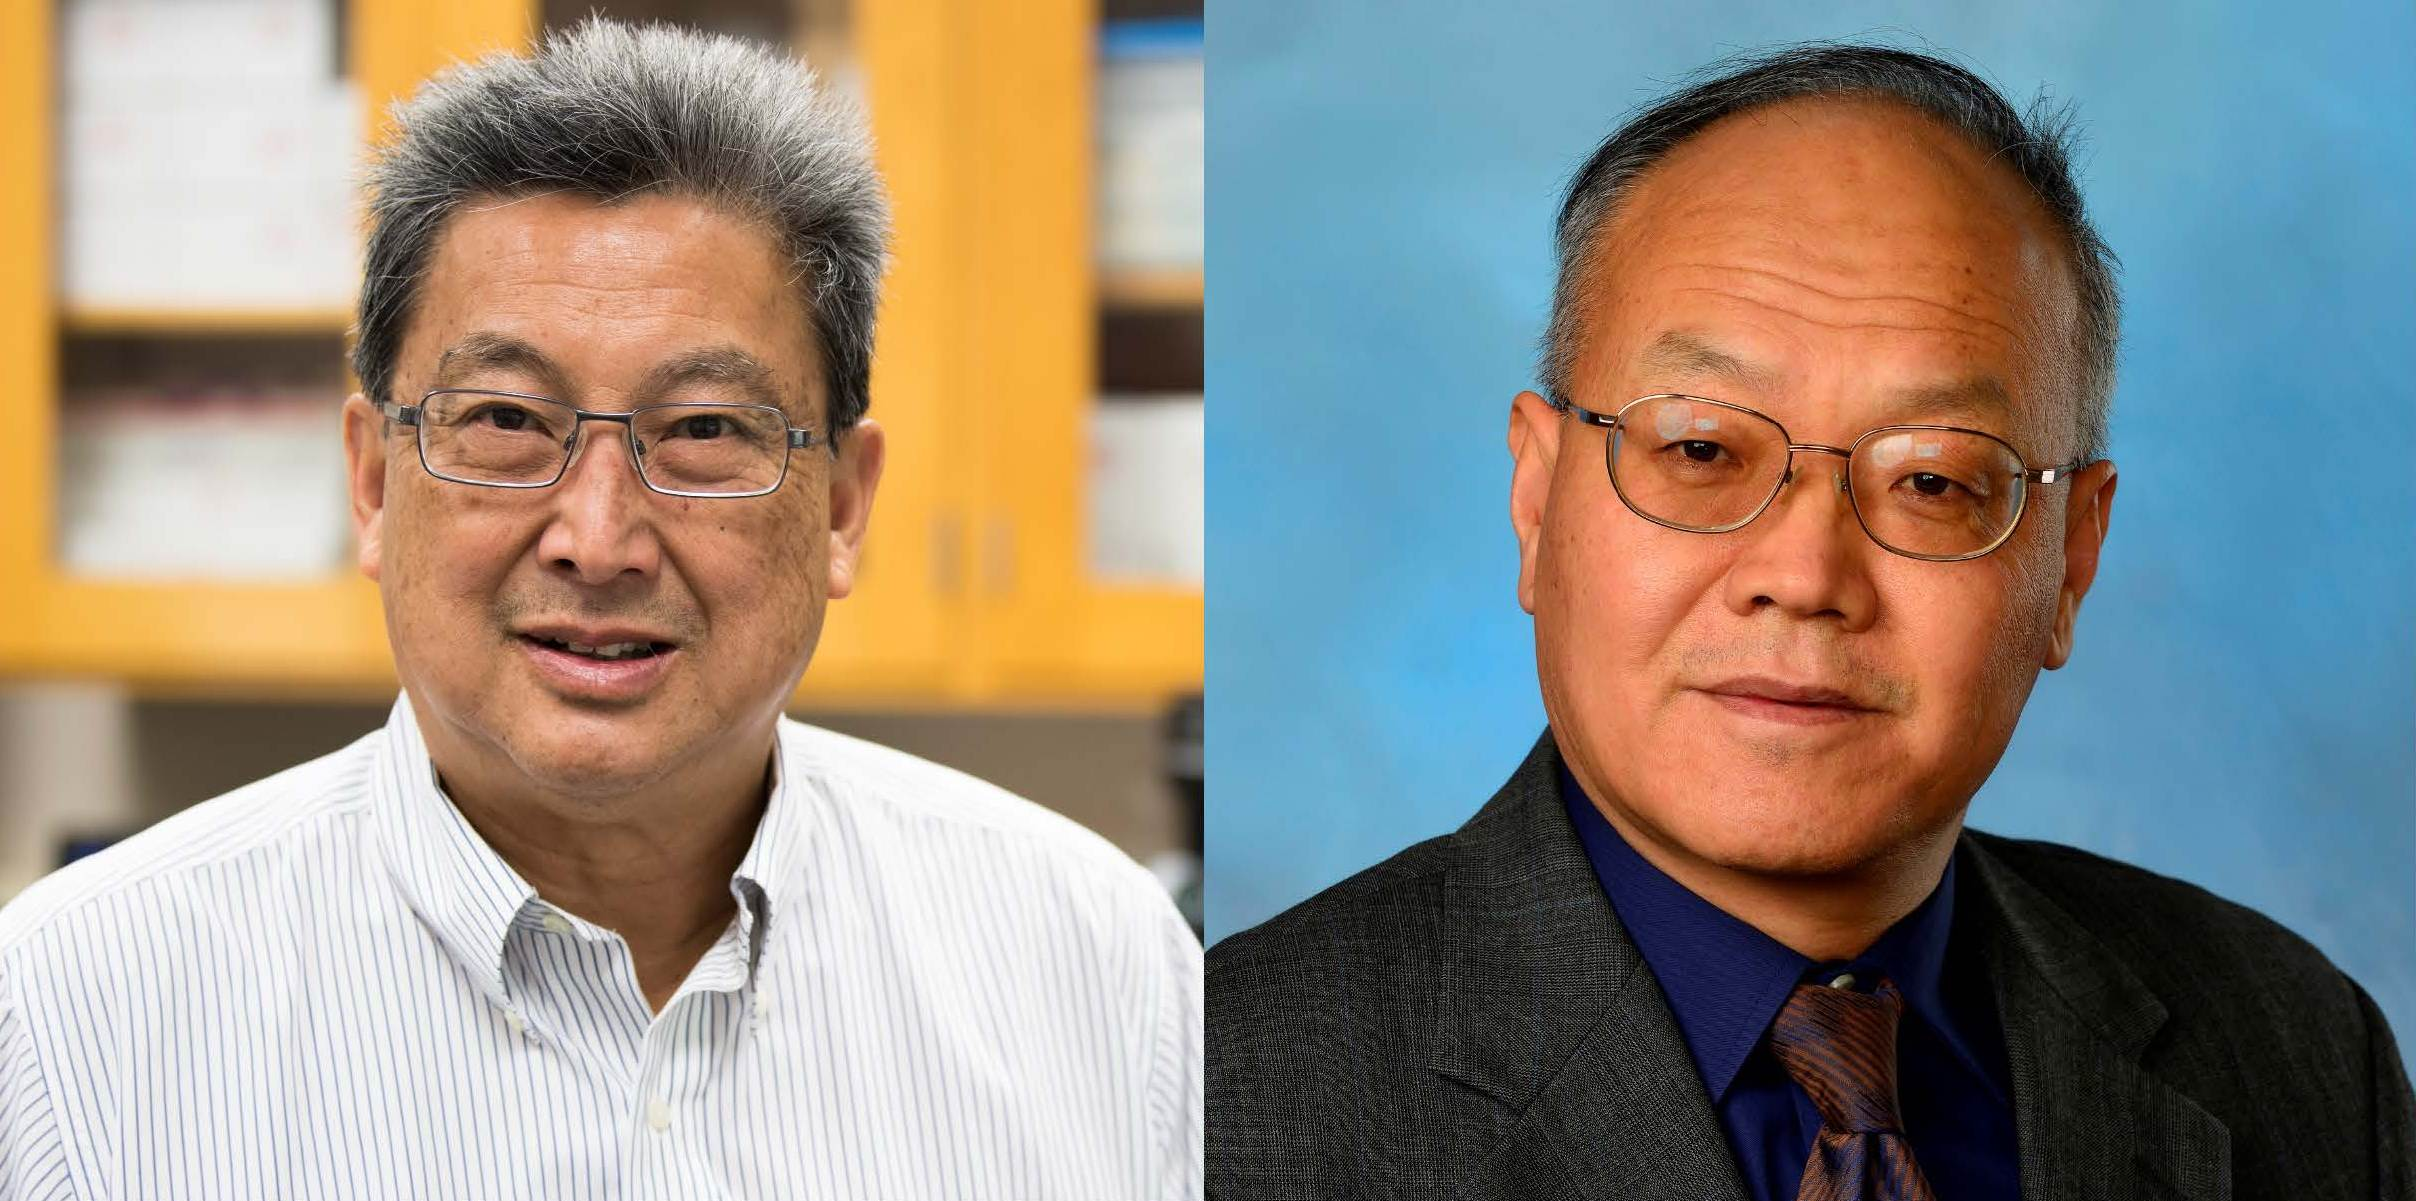 from left: Dr. Bryan Chin, Dr. ZhongYang Cheng